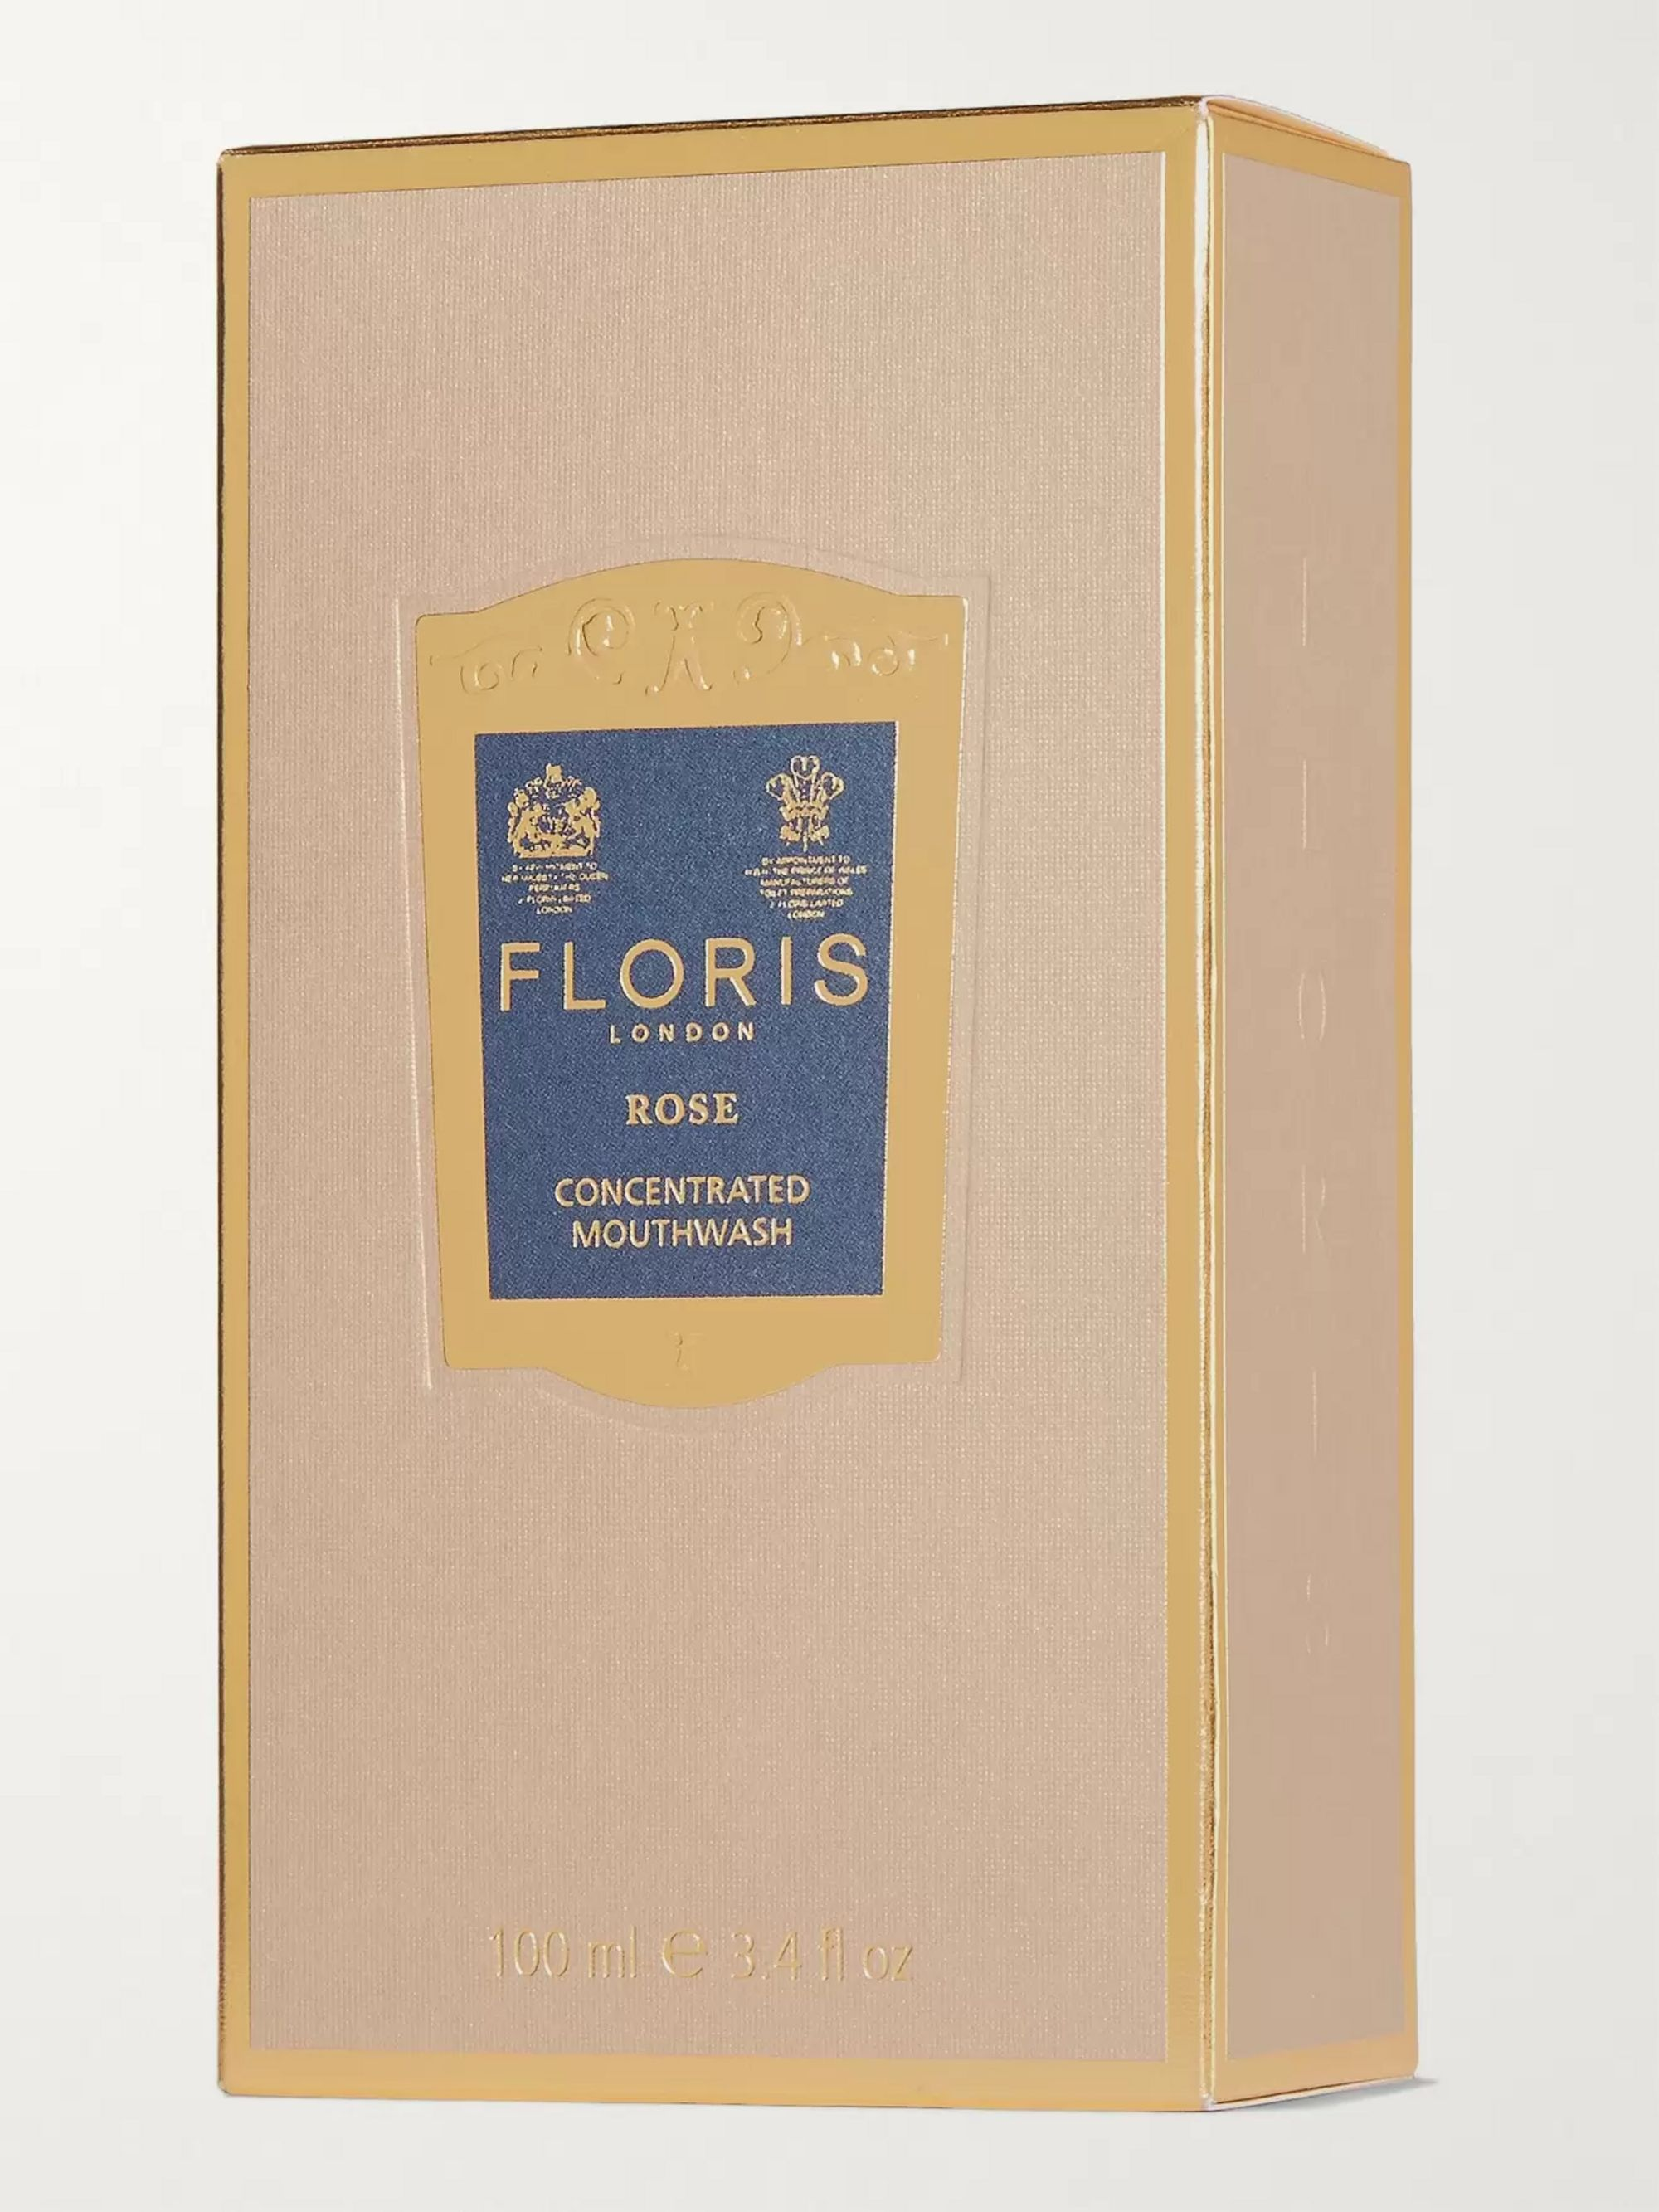 Floris London Rose Concentrated Mouthwash, 100ml